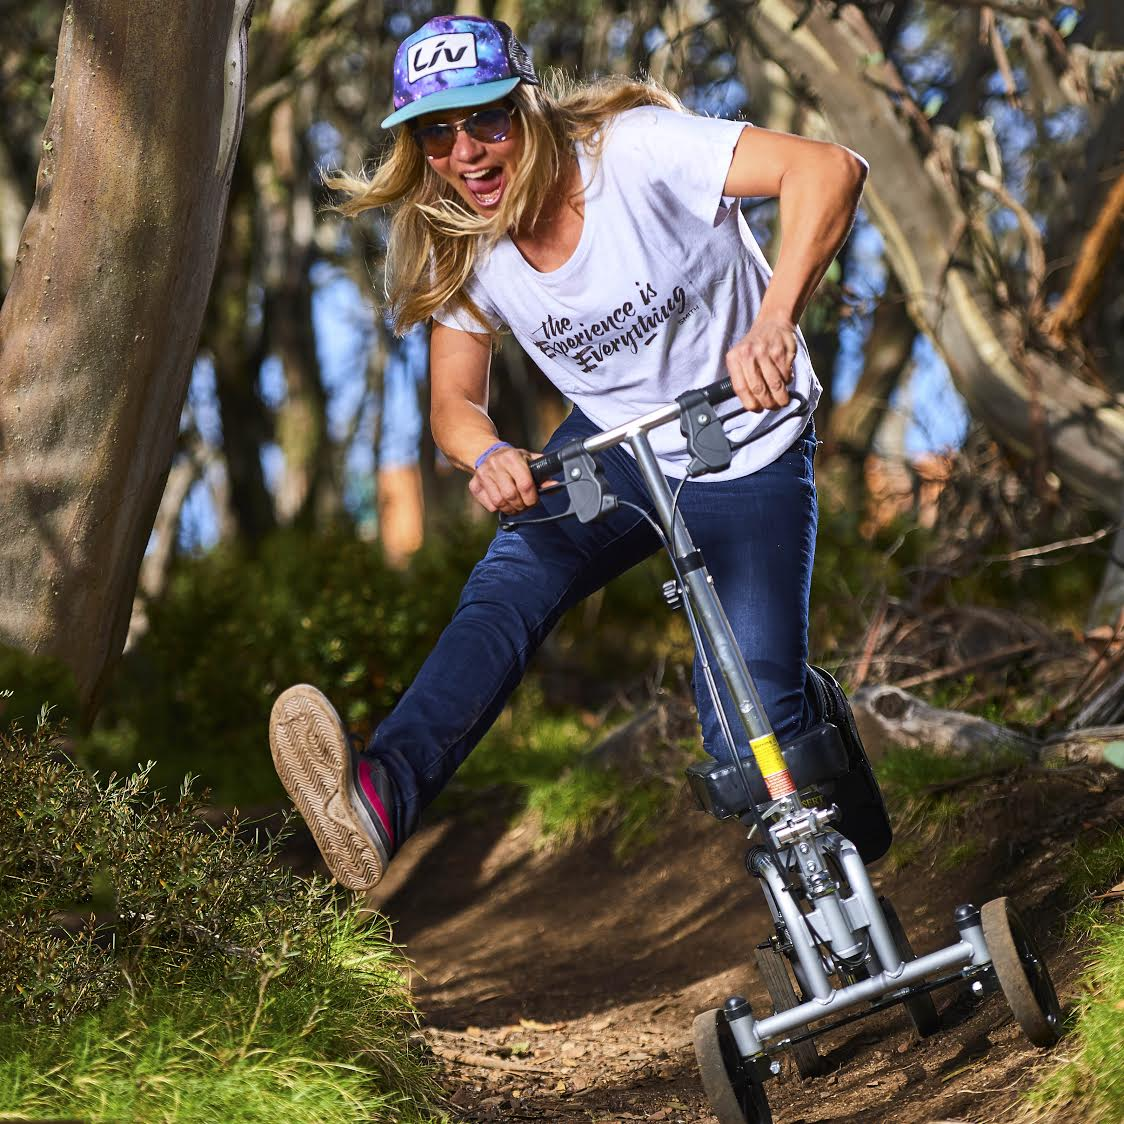 Lindsey Voreis was the Key note speaker at the Australian Mountain Bike Summit, but despite having a broken foot at the time, she still managed to get out on to the trails for a shred sesh. Foot out flat out.